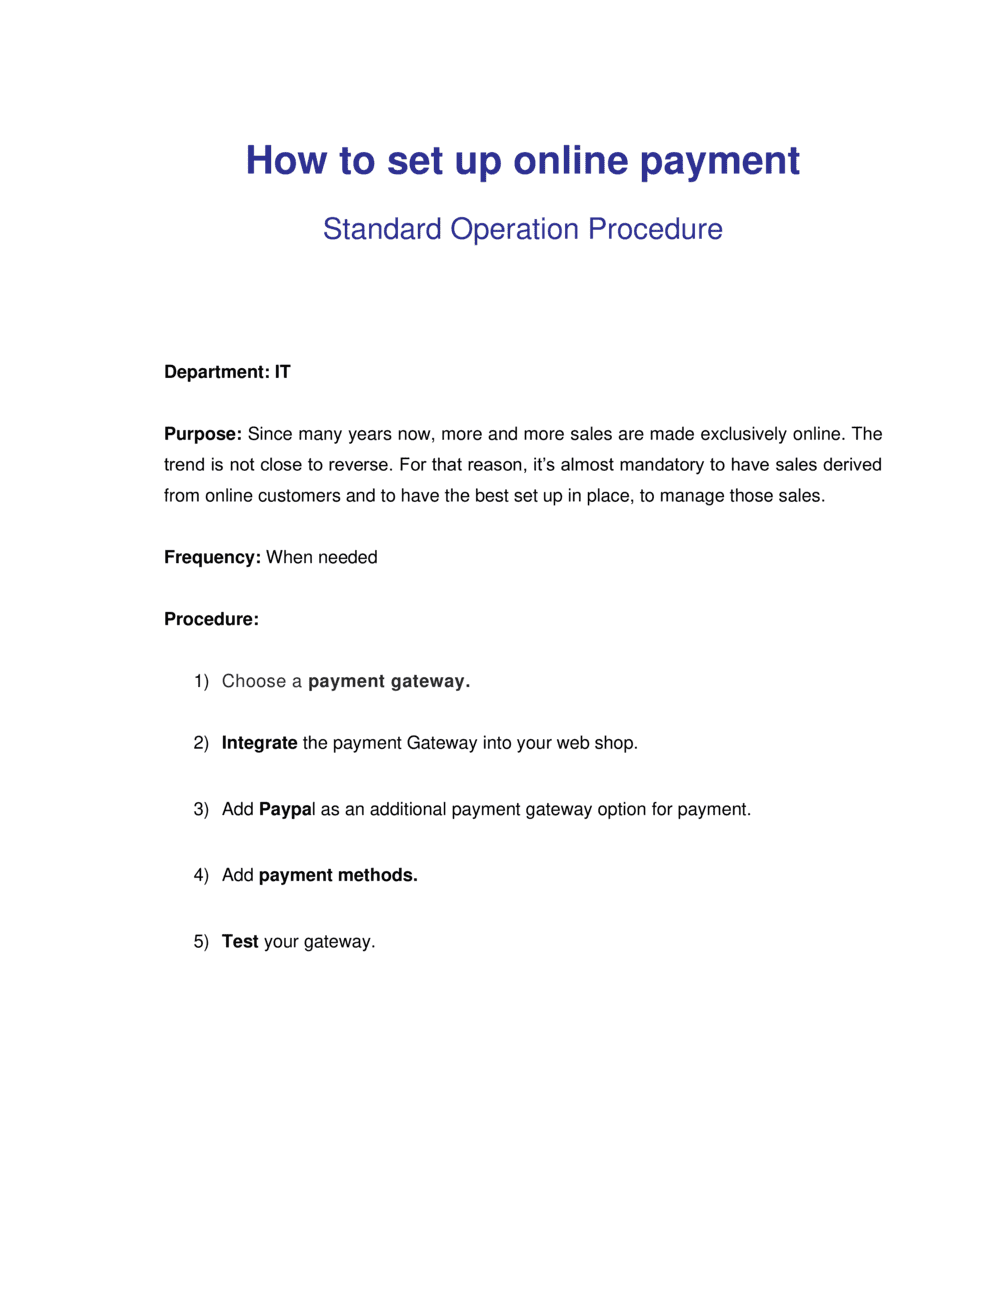 Business-in-a-Box's How to Setup Online Payment